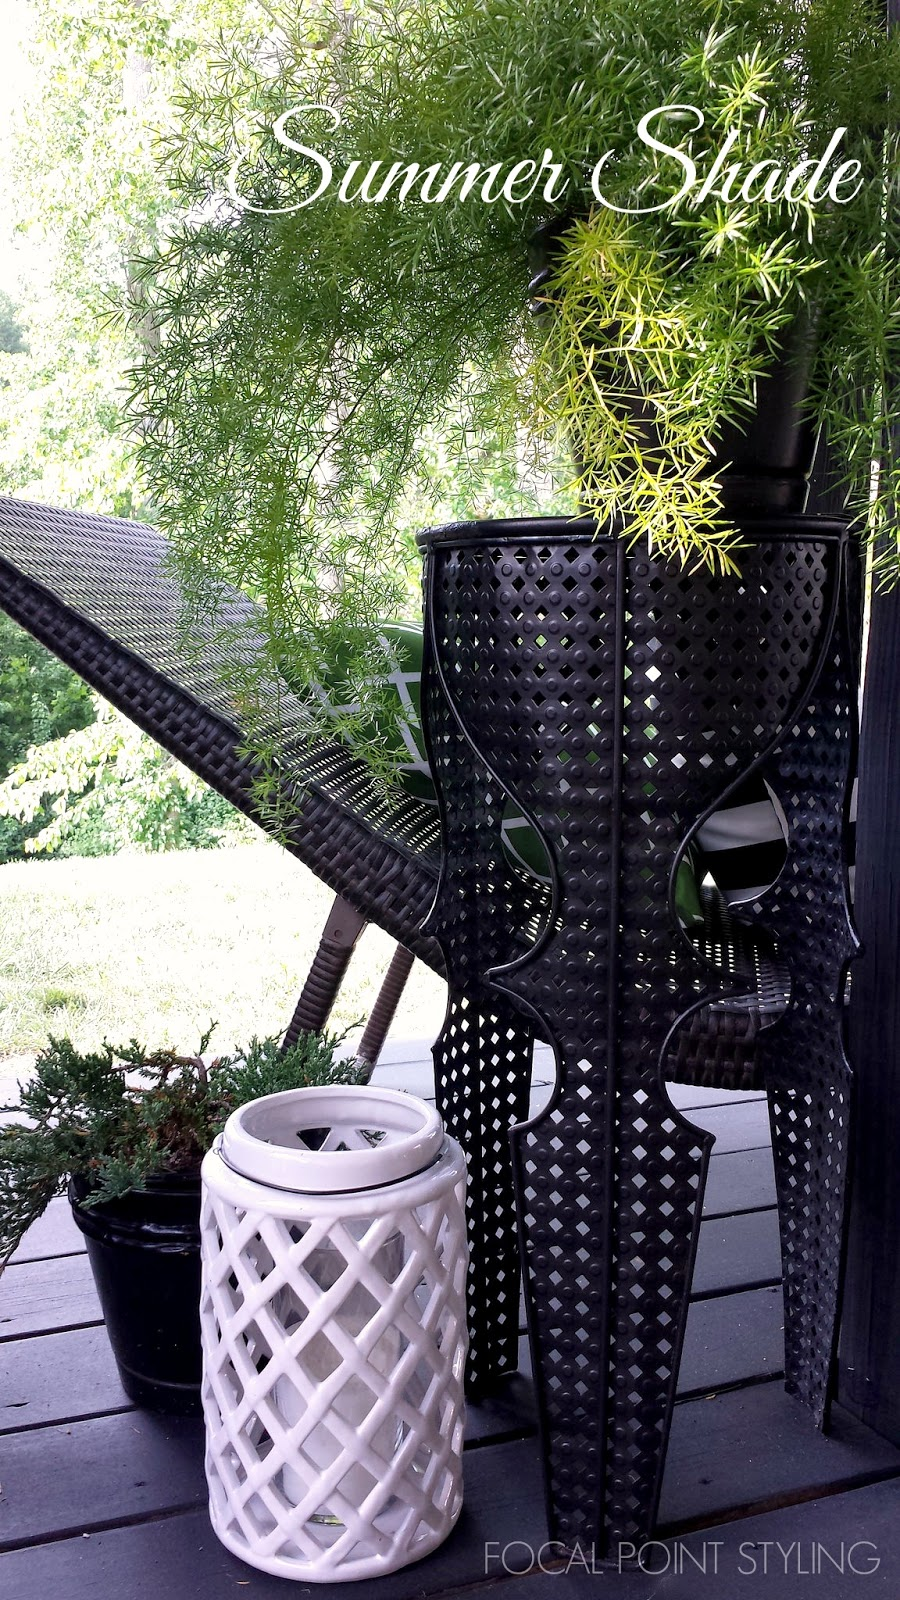 Spectacular FOCAL POINT STYLING Easy Outdoor Decorating Mixing Old u New Deck Decor